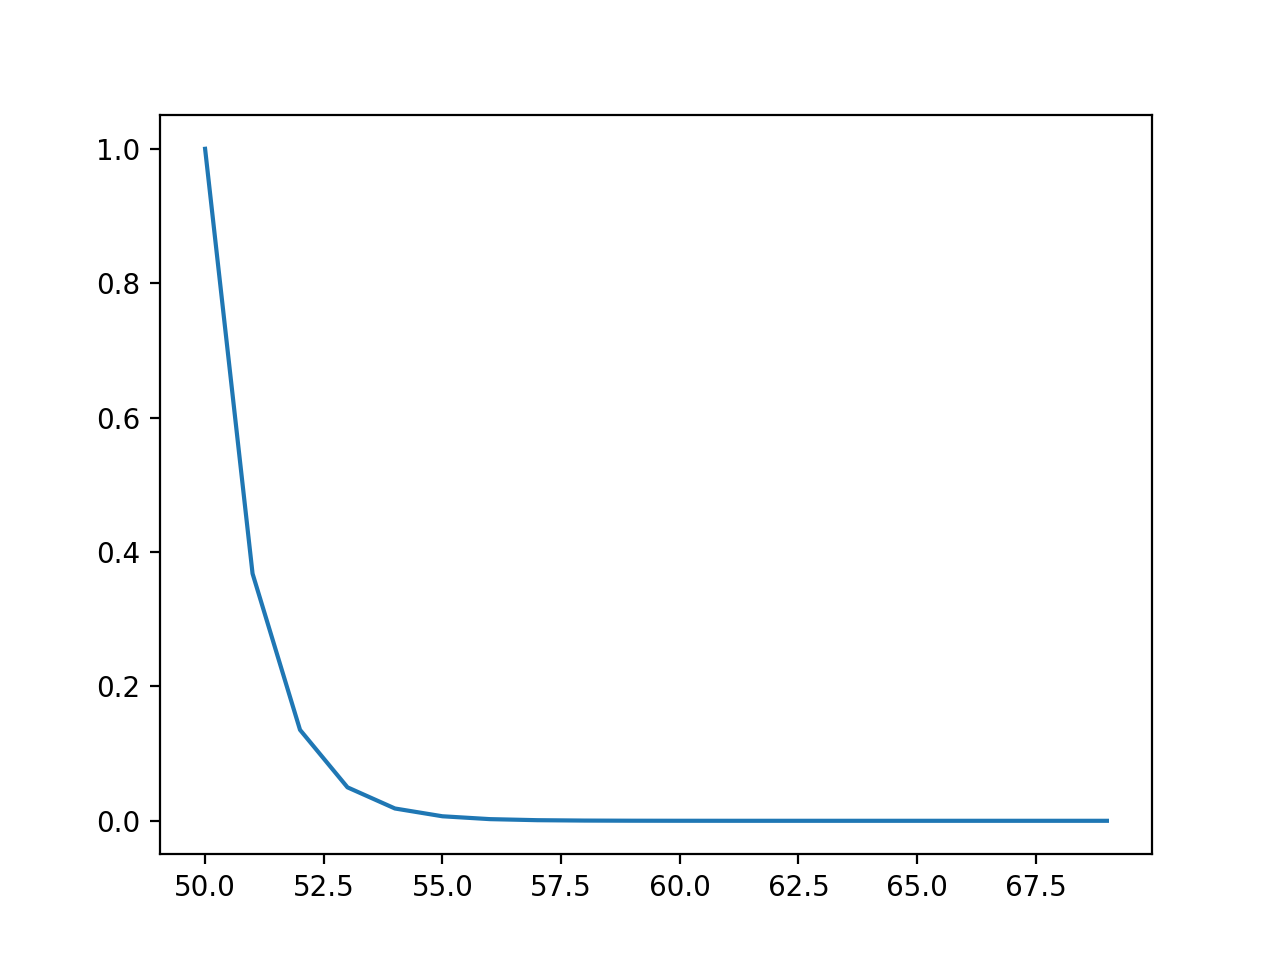 Line Plot of Events vs. Probability or the Probability Density Function for the Exponential Distribution